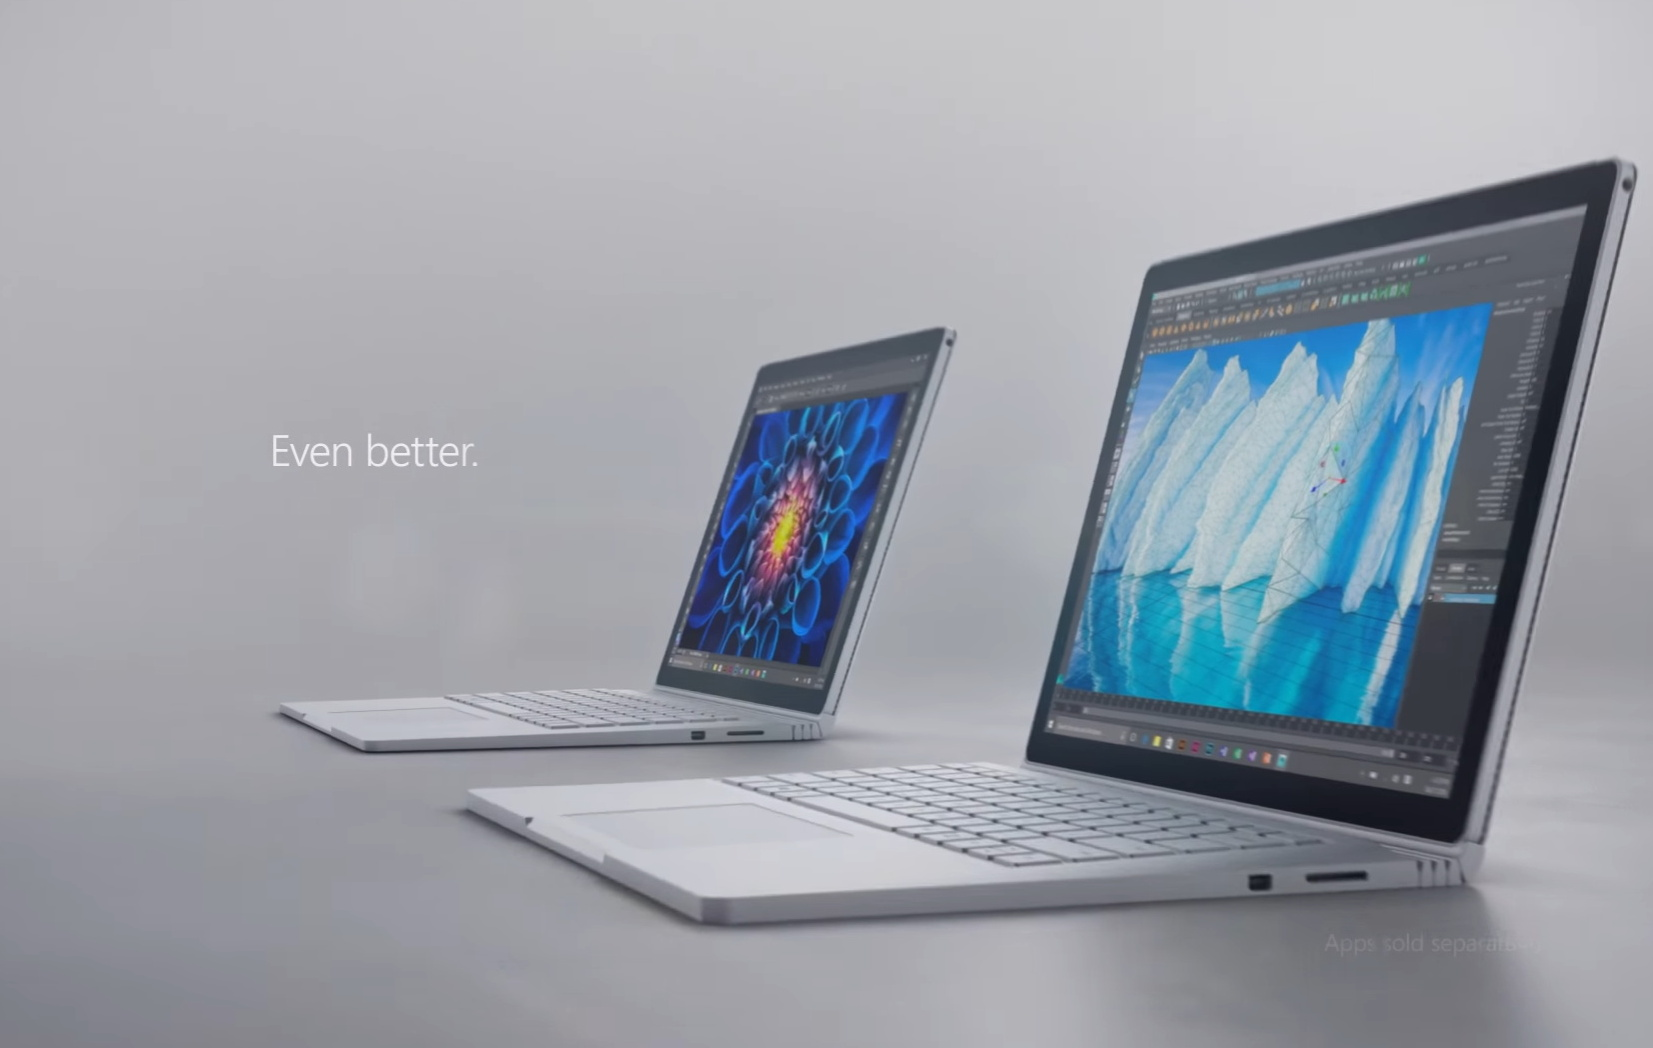 Surface Book 2016 with Performance Base